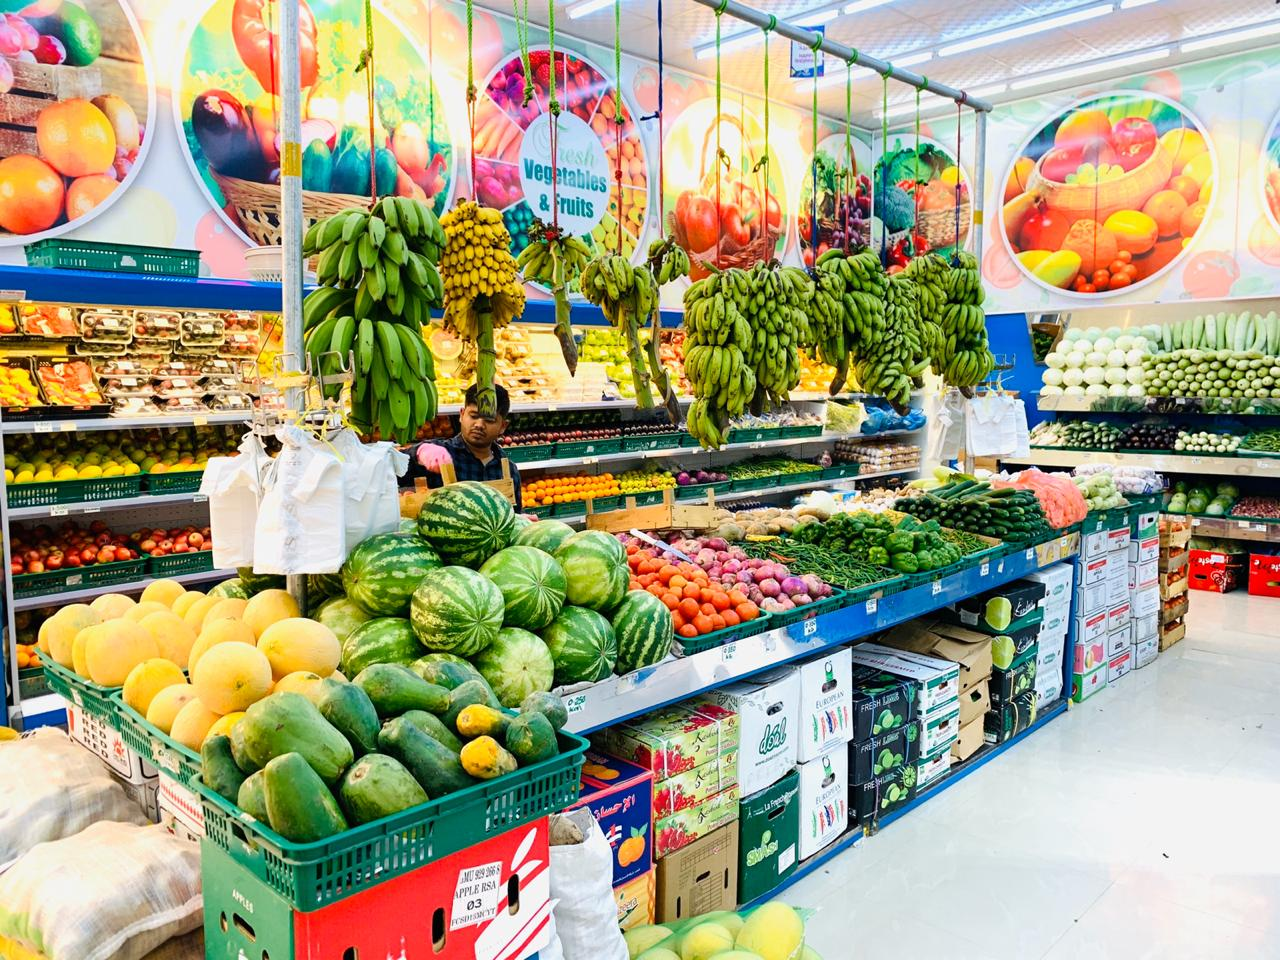 Enough foodstuffs in local markets, no need to stock up: Officials